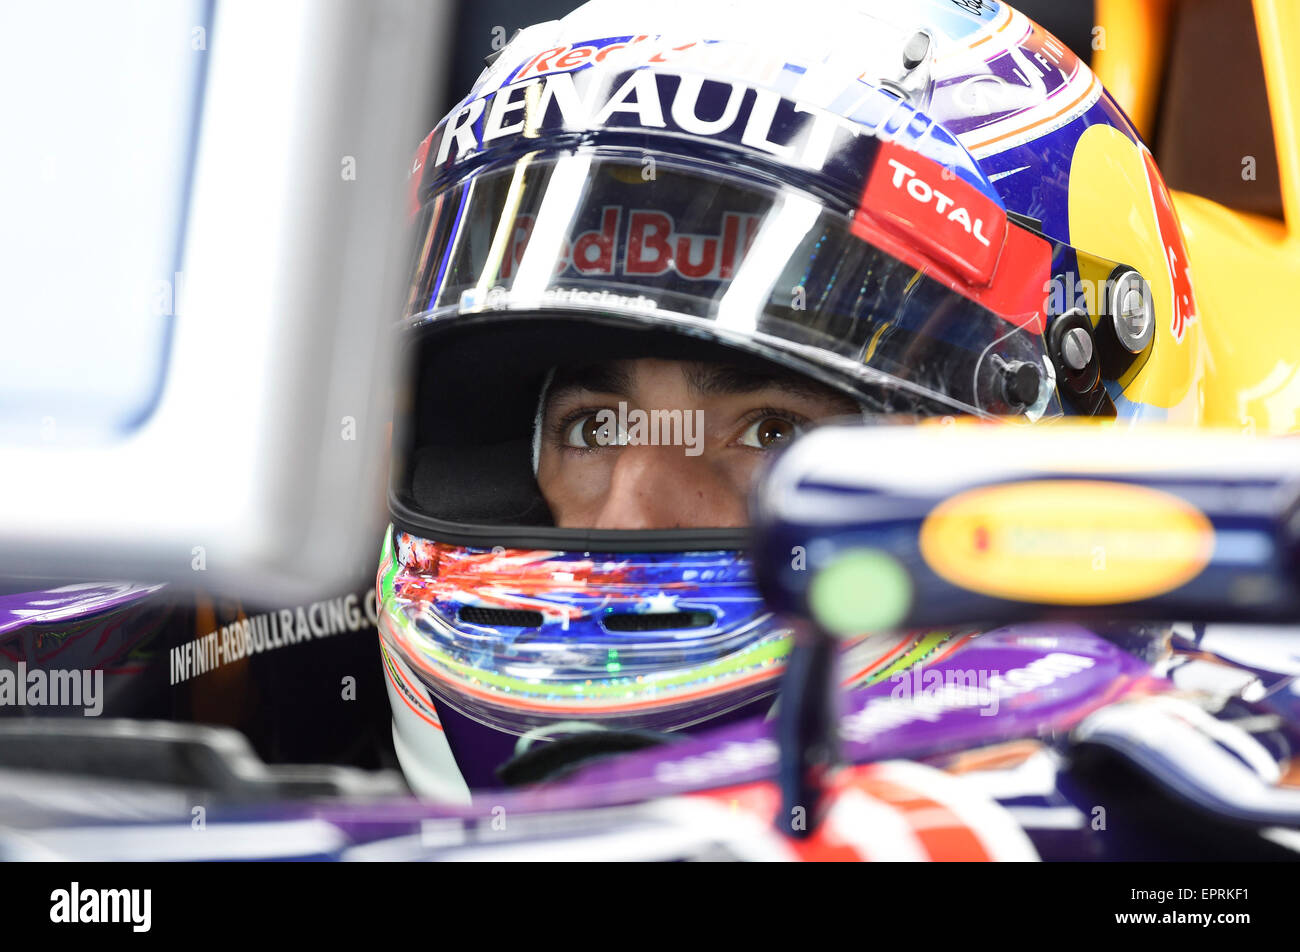 Monte Carlo, Monaco. 21 mai, 2015. Daniel Ricciardo, Red Bull Racing, la Formule 1 2015, le Grand Prix de Monaco, Photo Stock